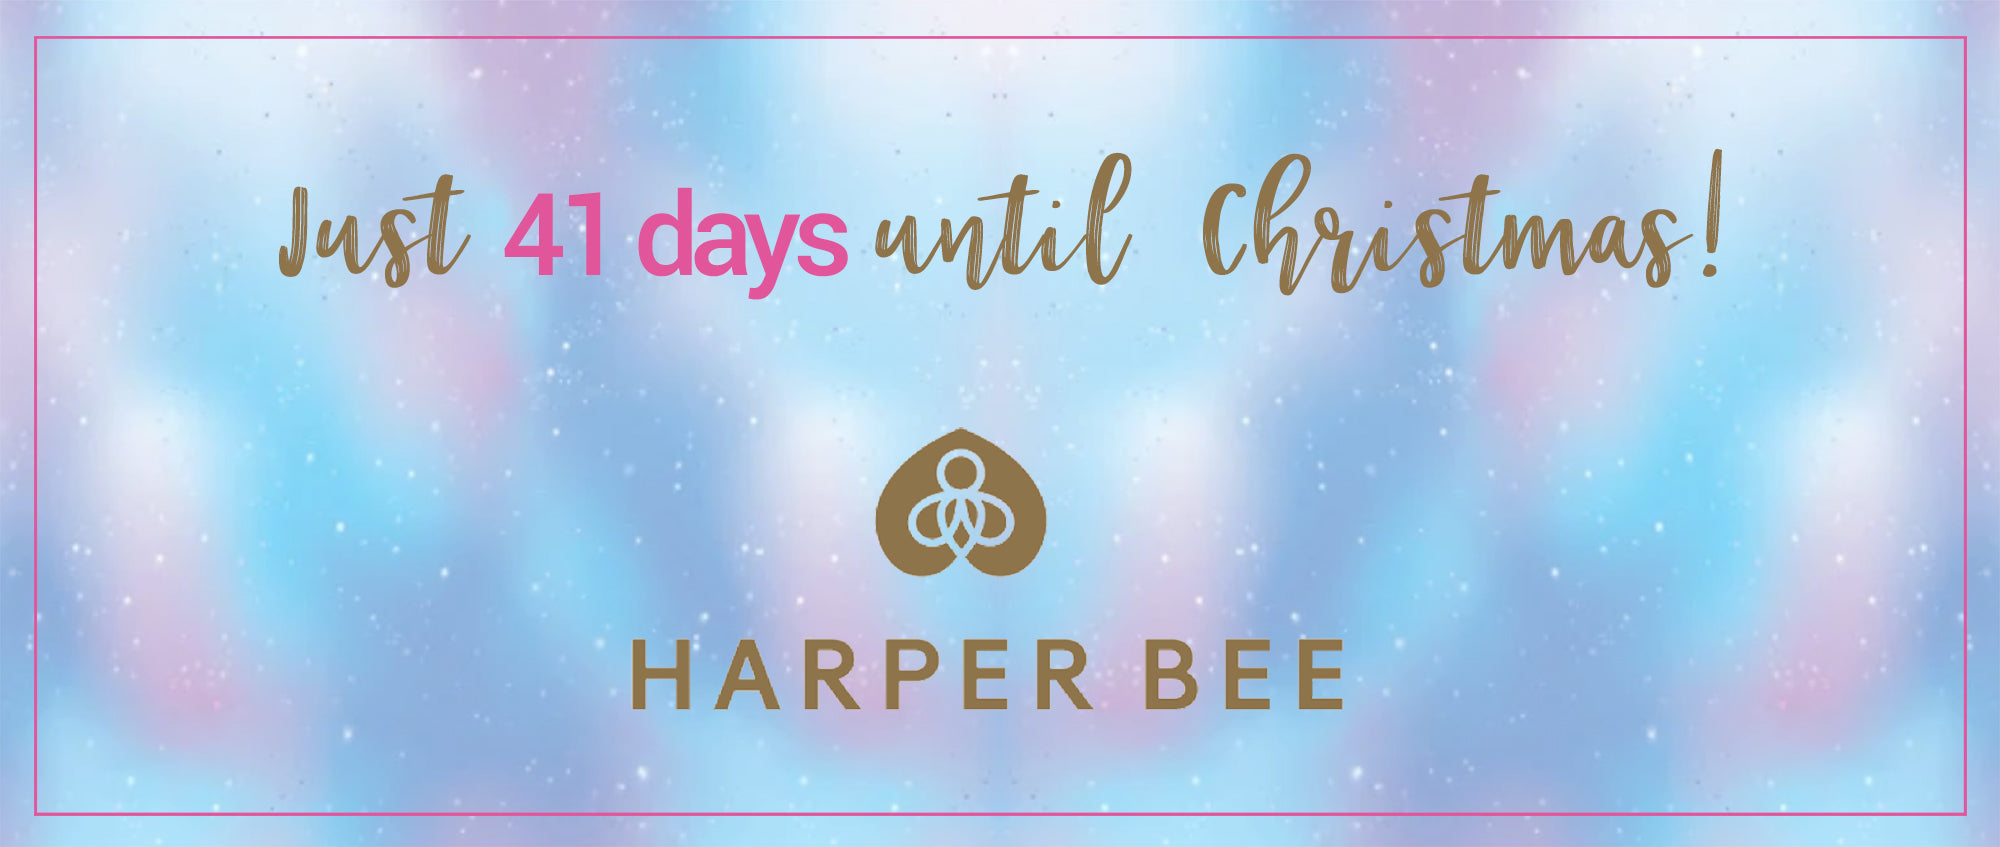 Harper Bee gift packs are the best choice for your tween this Christmas!